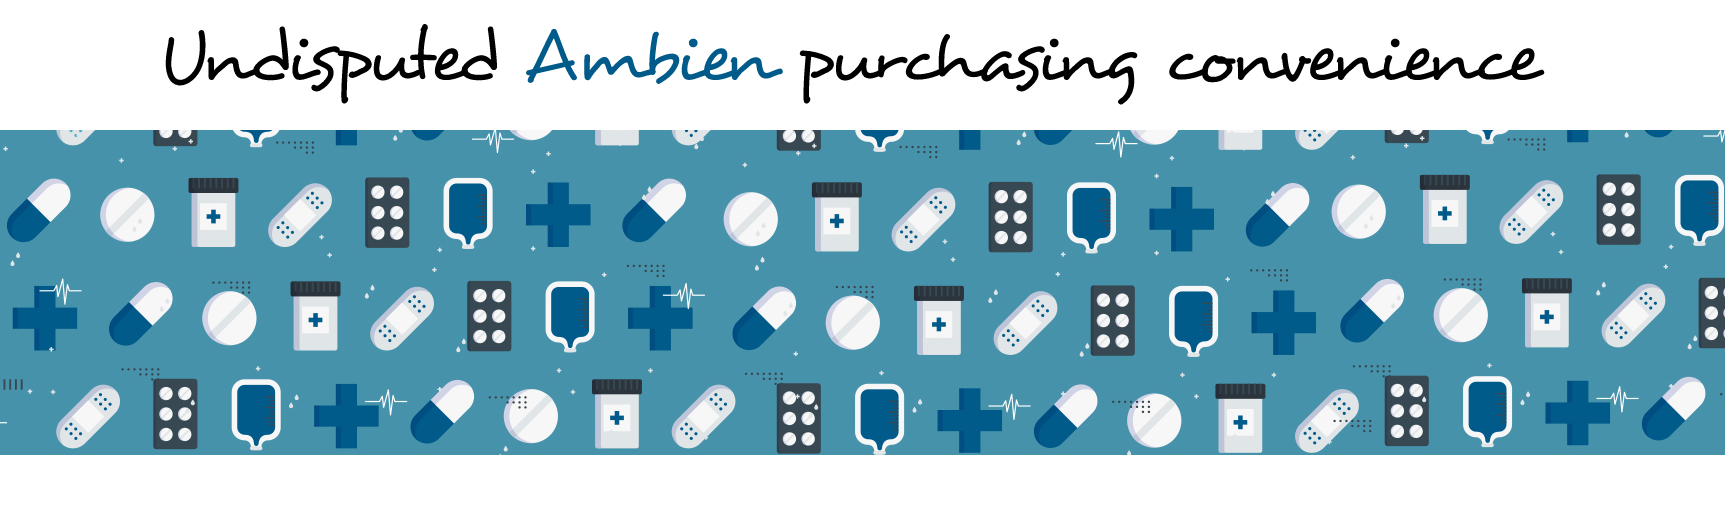 ambien without prescription pharmacy banner